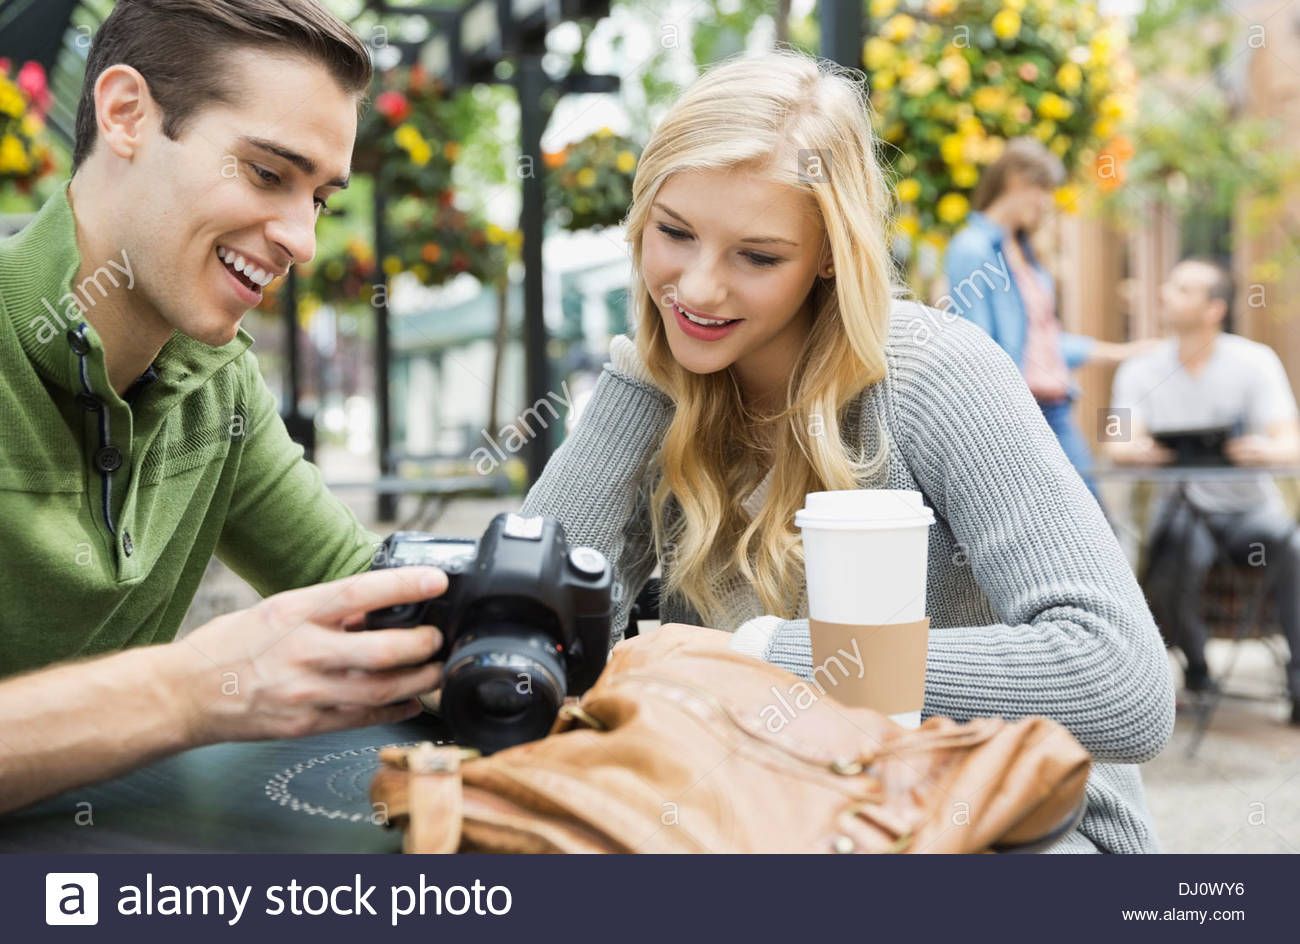 Man showing photographs on camera to woman - Stock Image